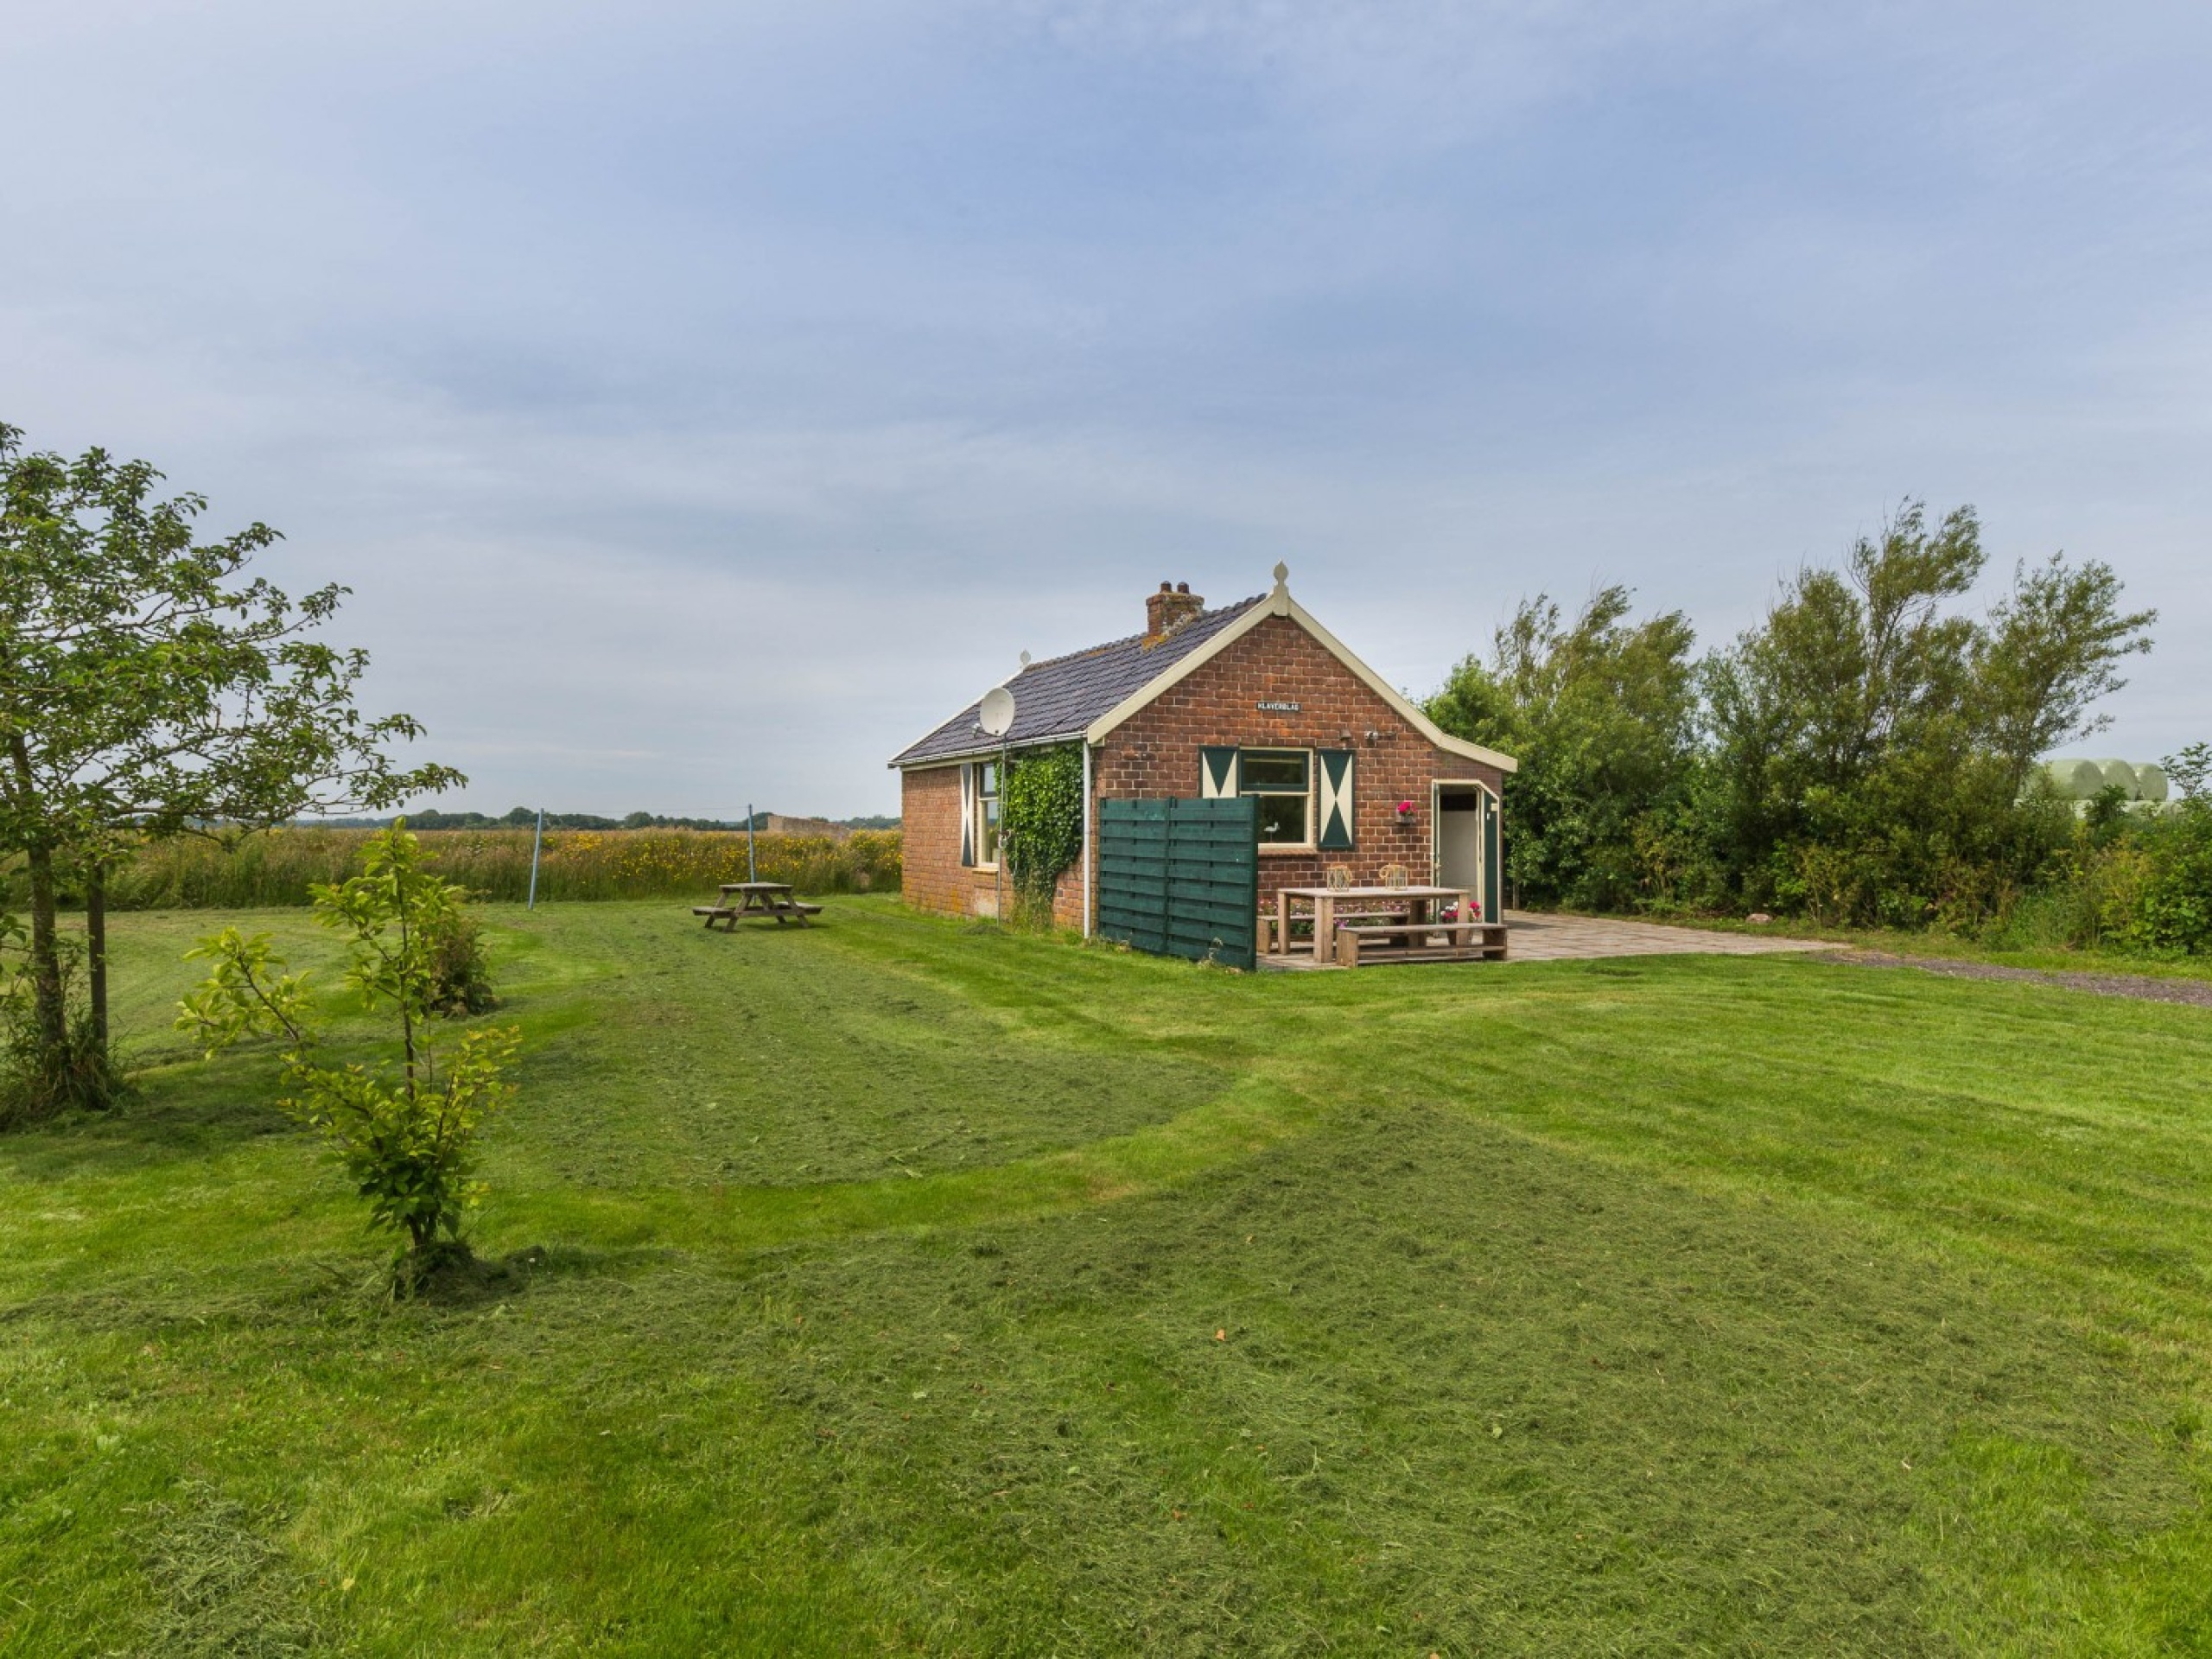 Authentic detached holiday home near De Waal